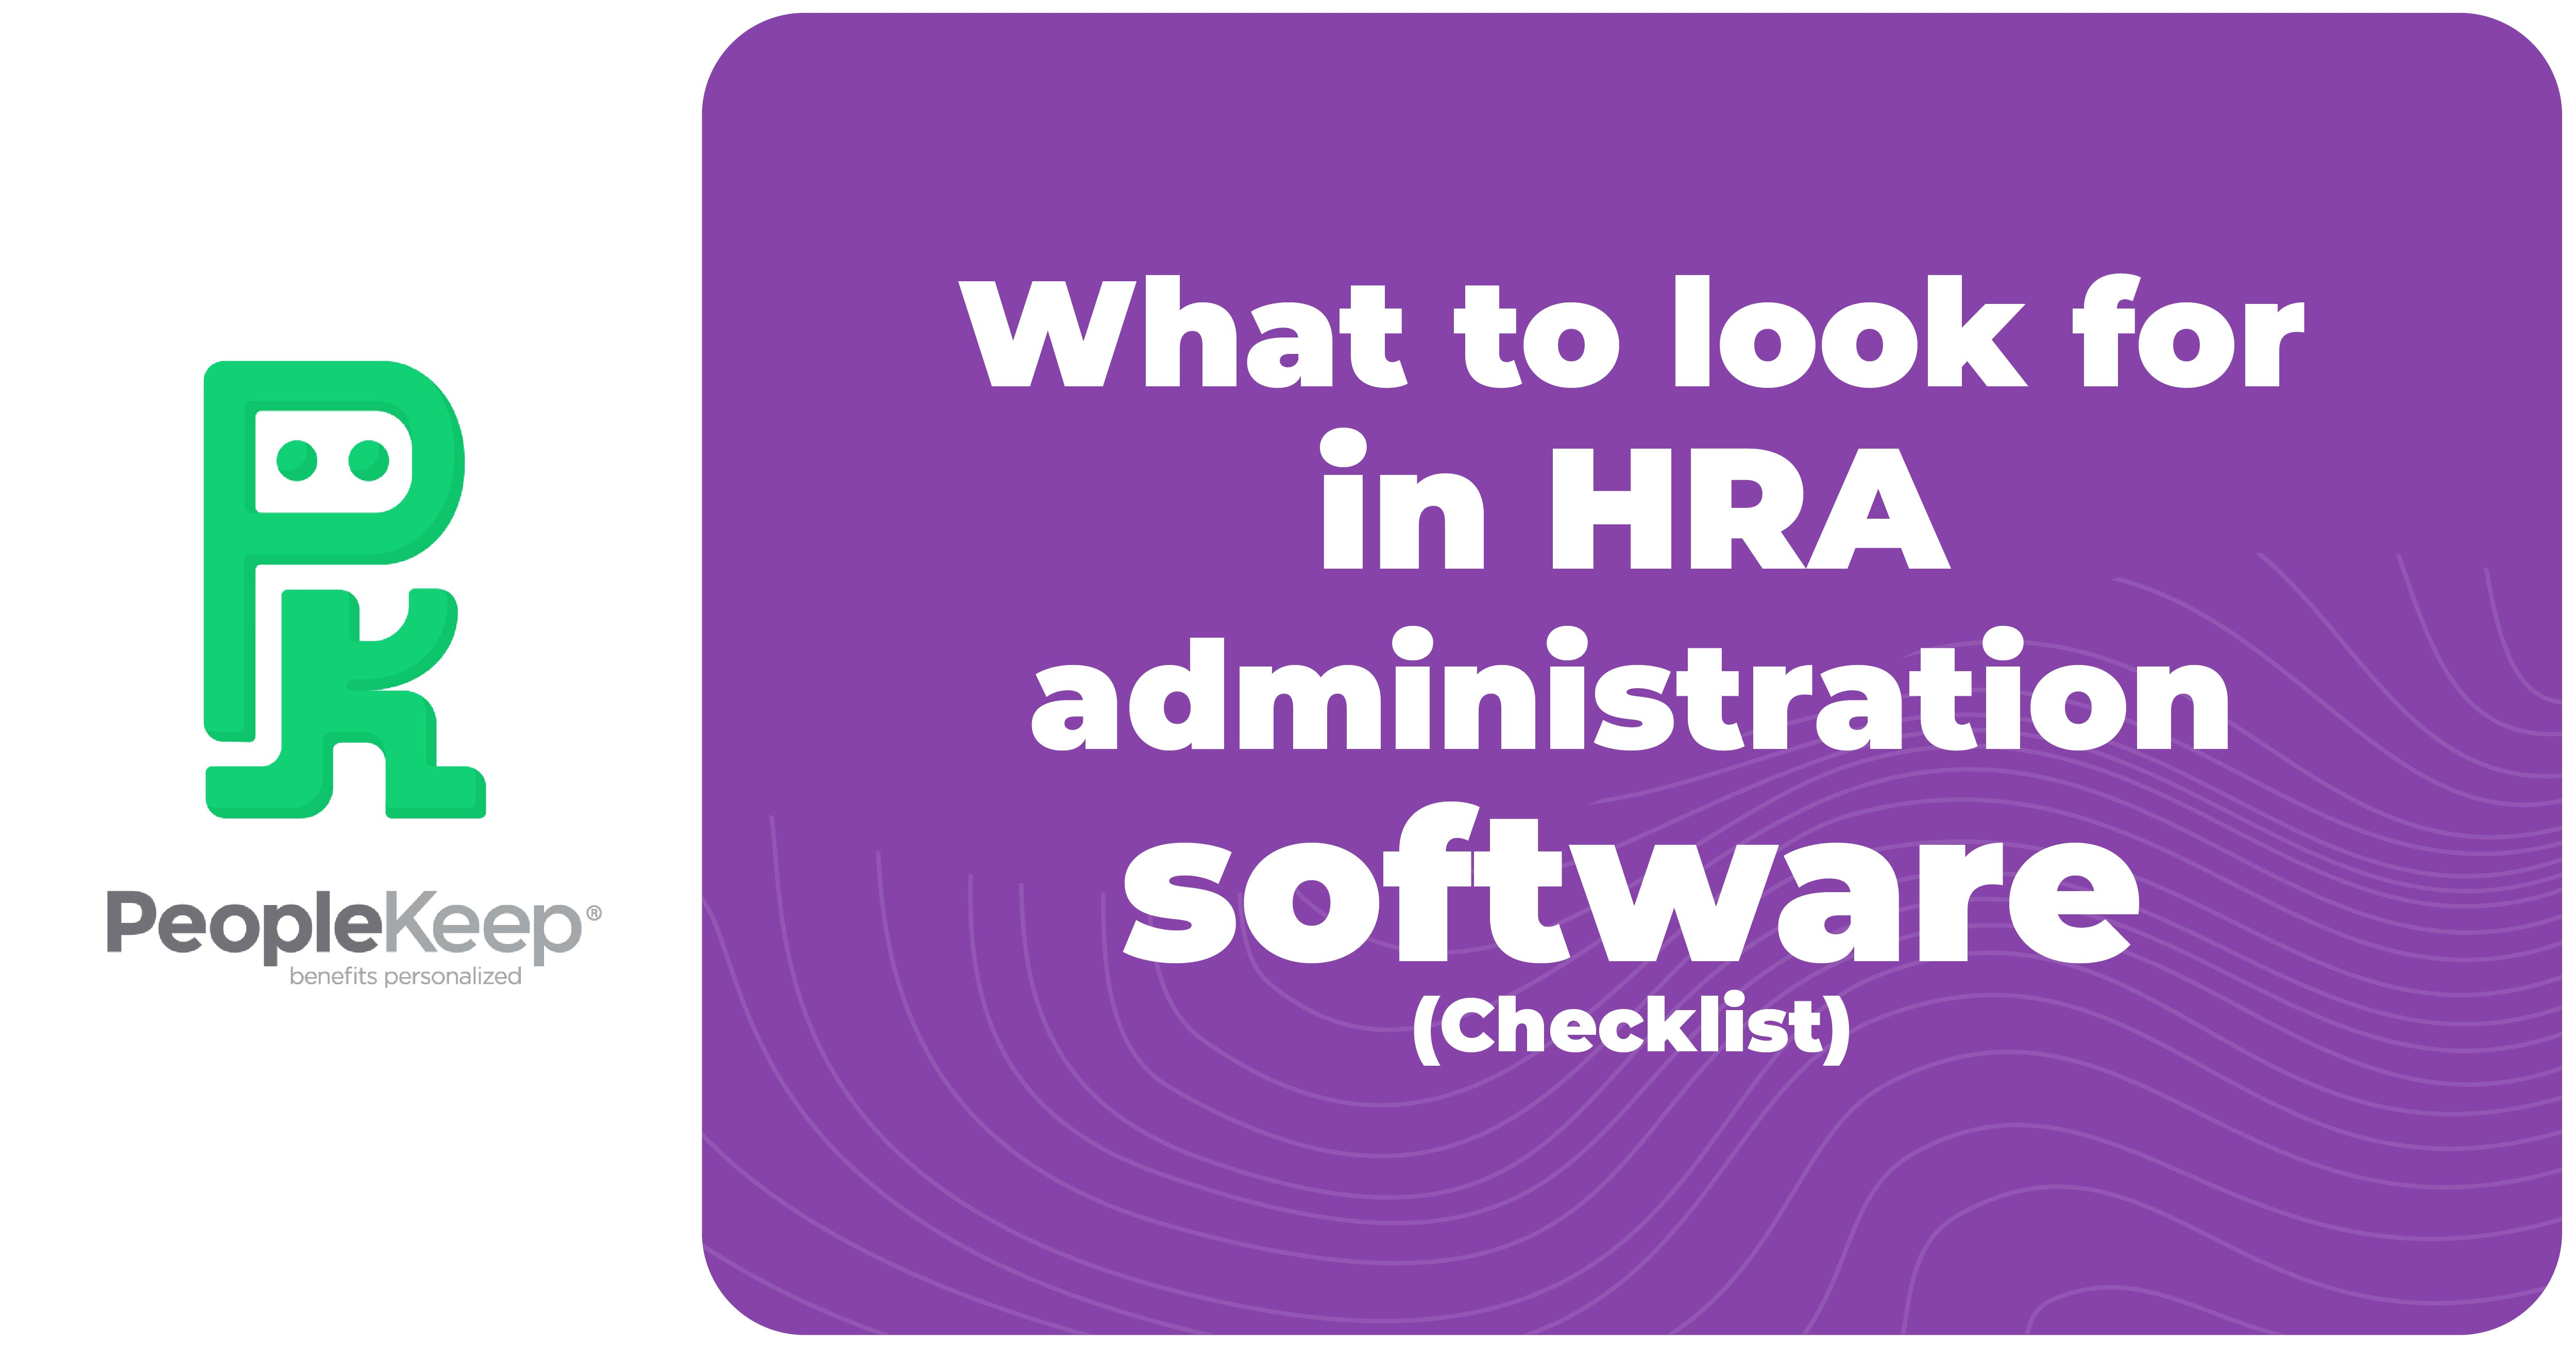 What to look for in HRA administration software